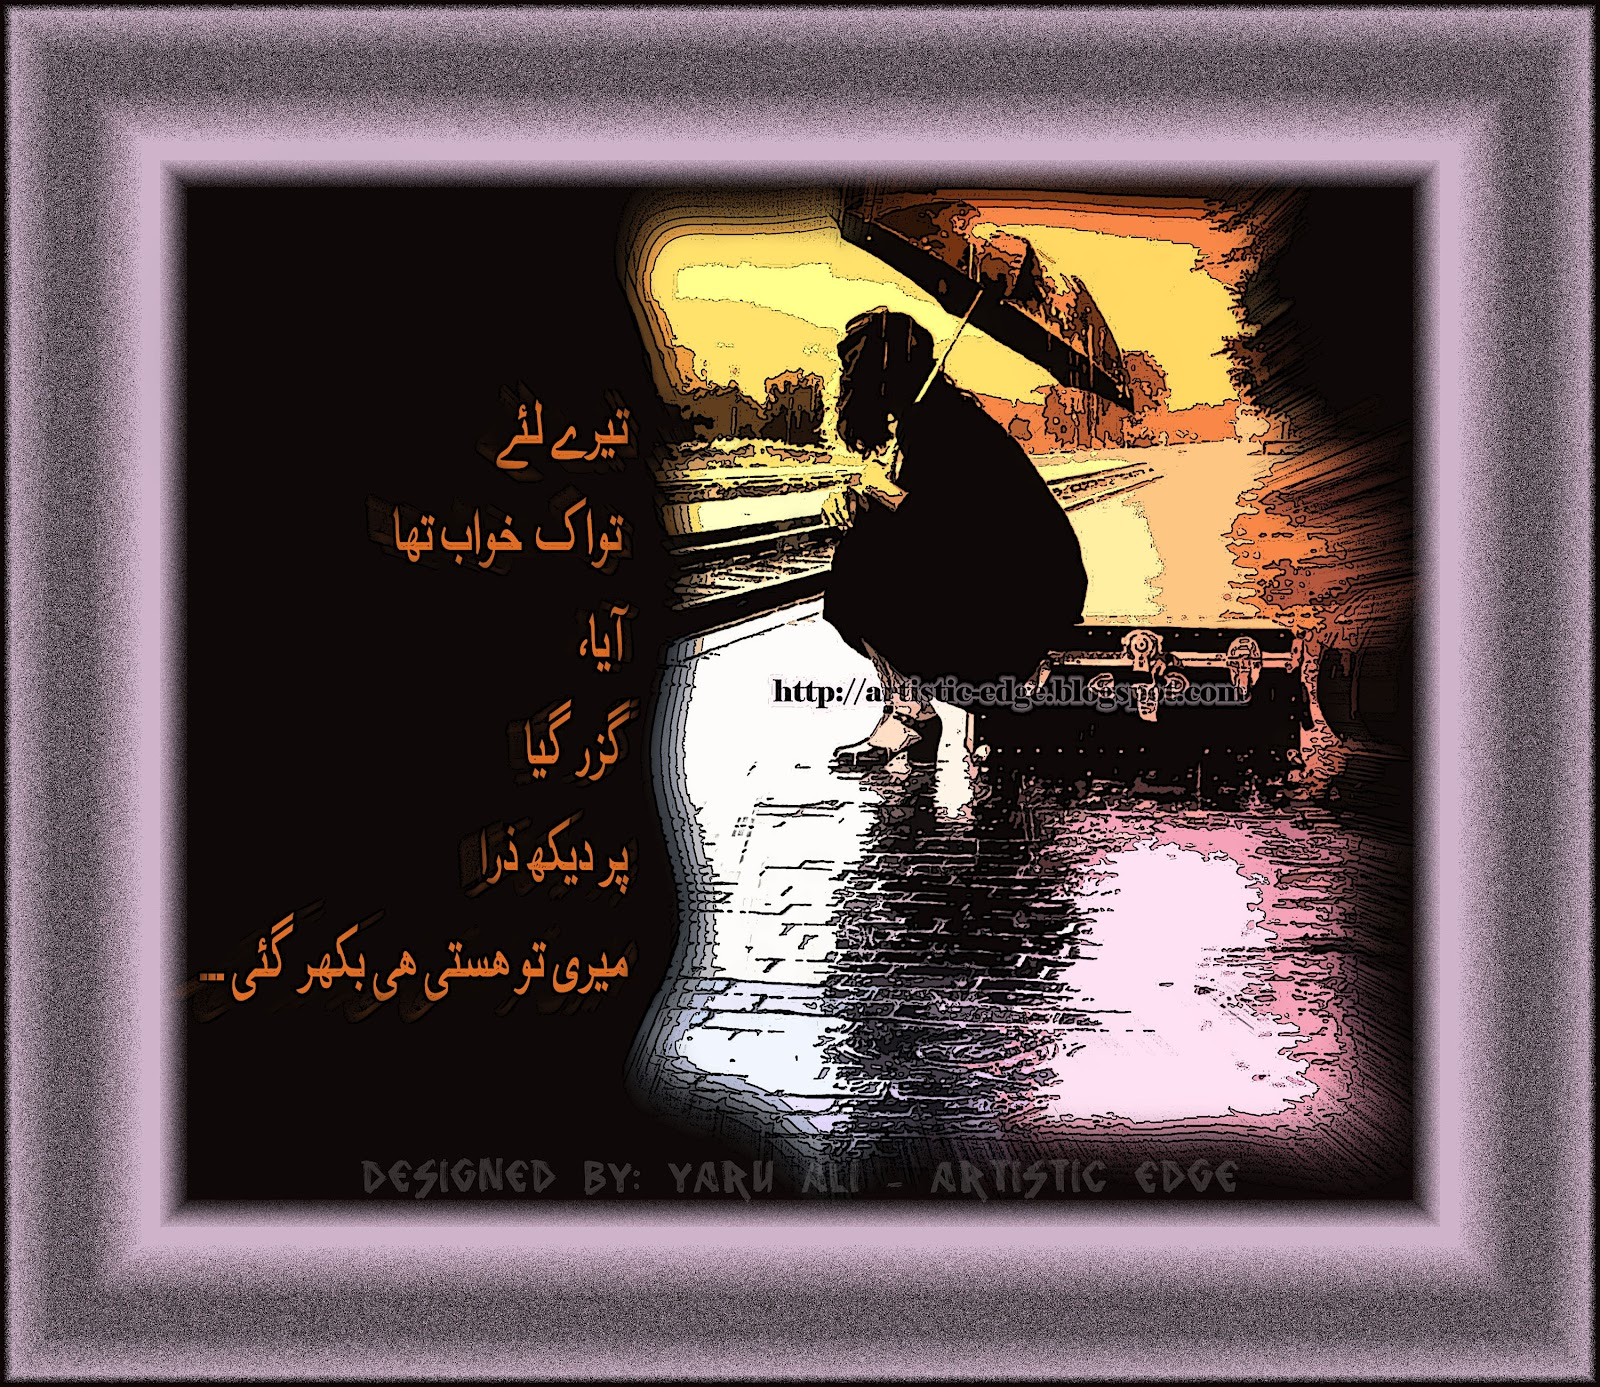 http://1.bp.blogspot.com/-aGgjf4c3kbg/T-Lbg849nDI/AAAAAAAABY0/AcXTOB-qFD8/s1600/Sad%20Urdu%20Poetry%20Wallpapers.jpg